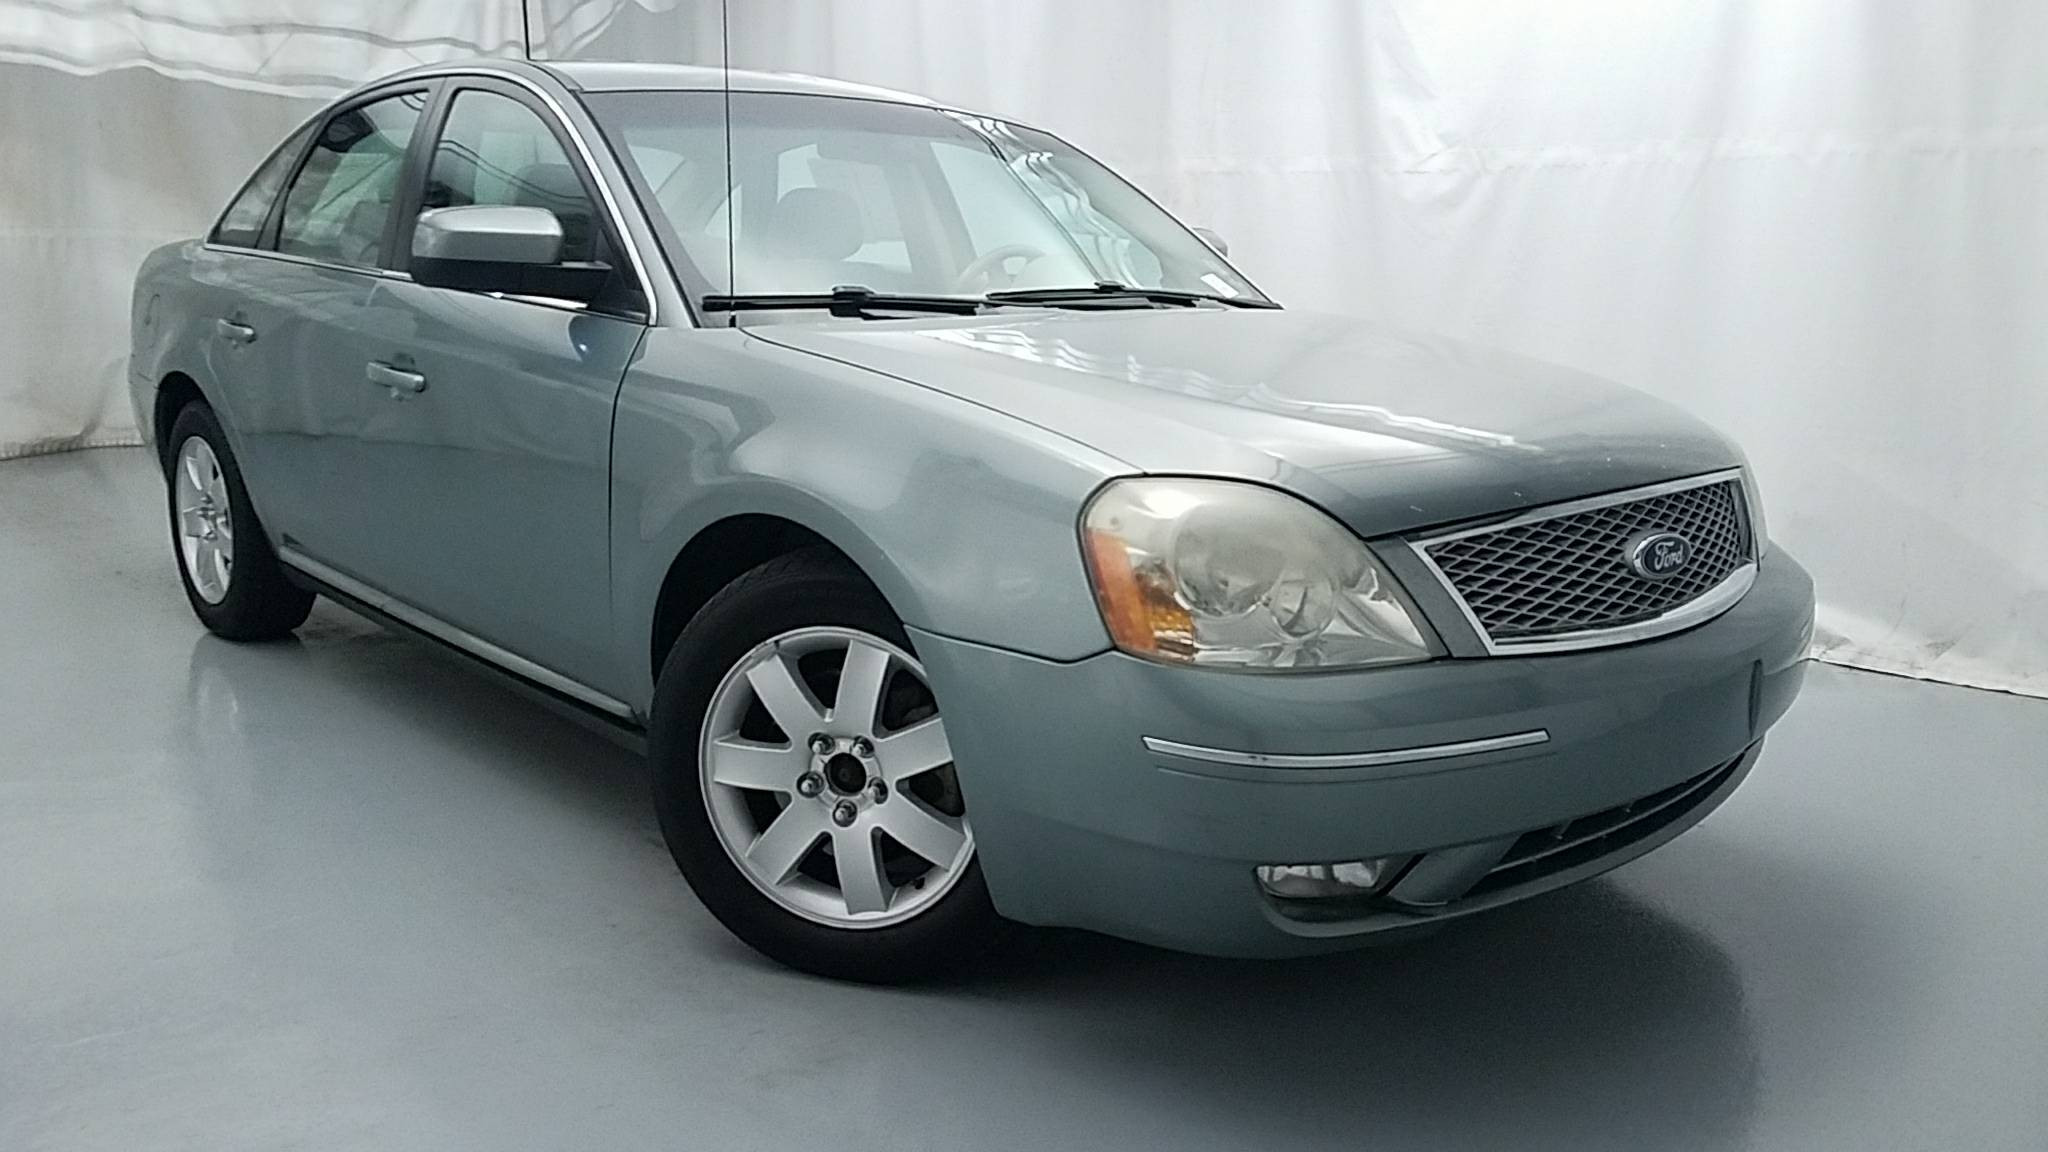 used cars new orleans fresh used ford five hundred vehicles for sale for hammond to new